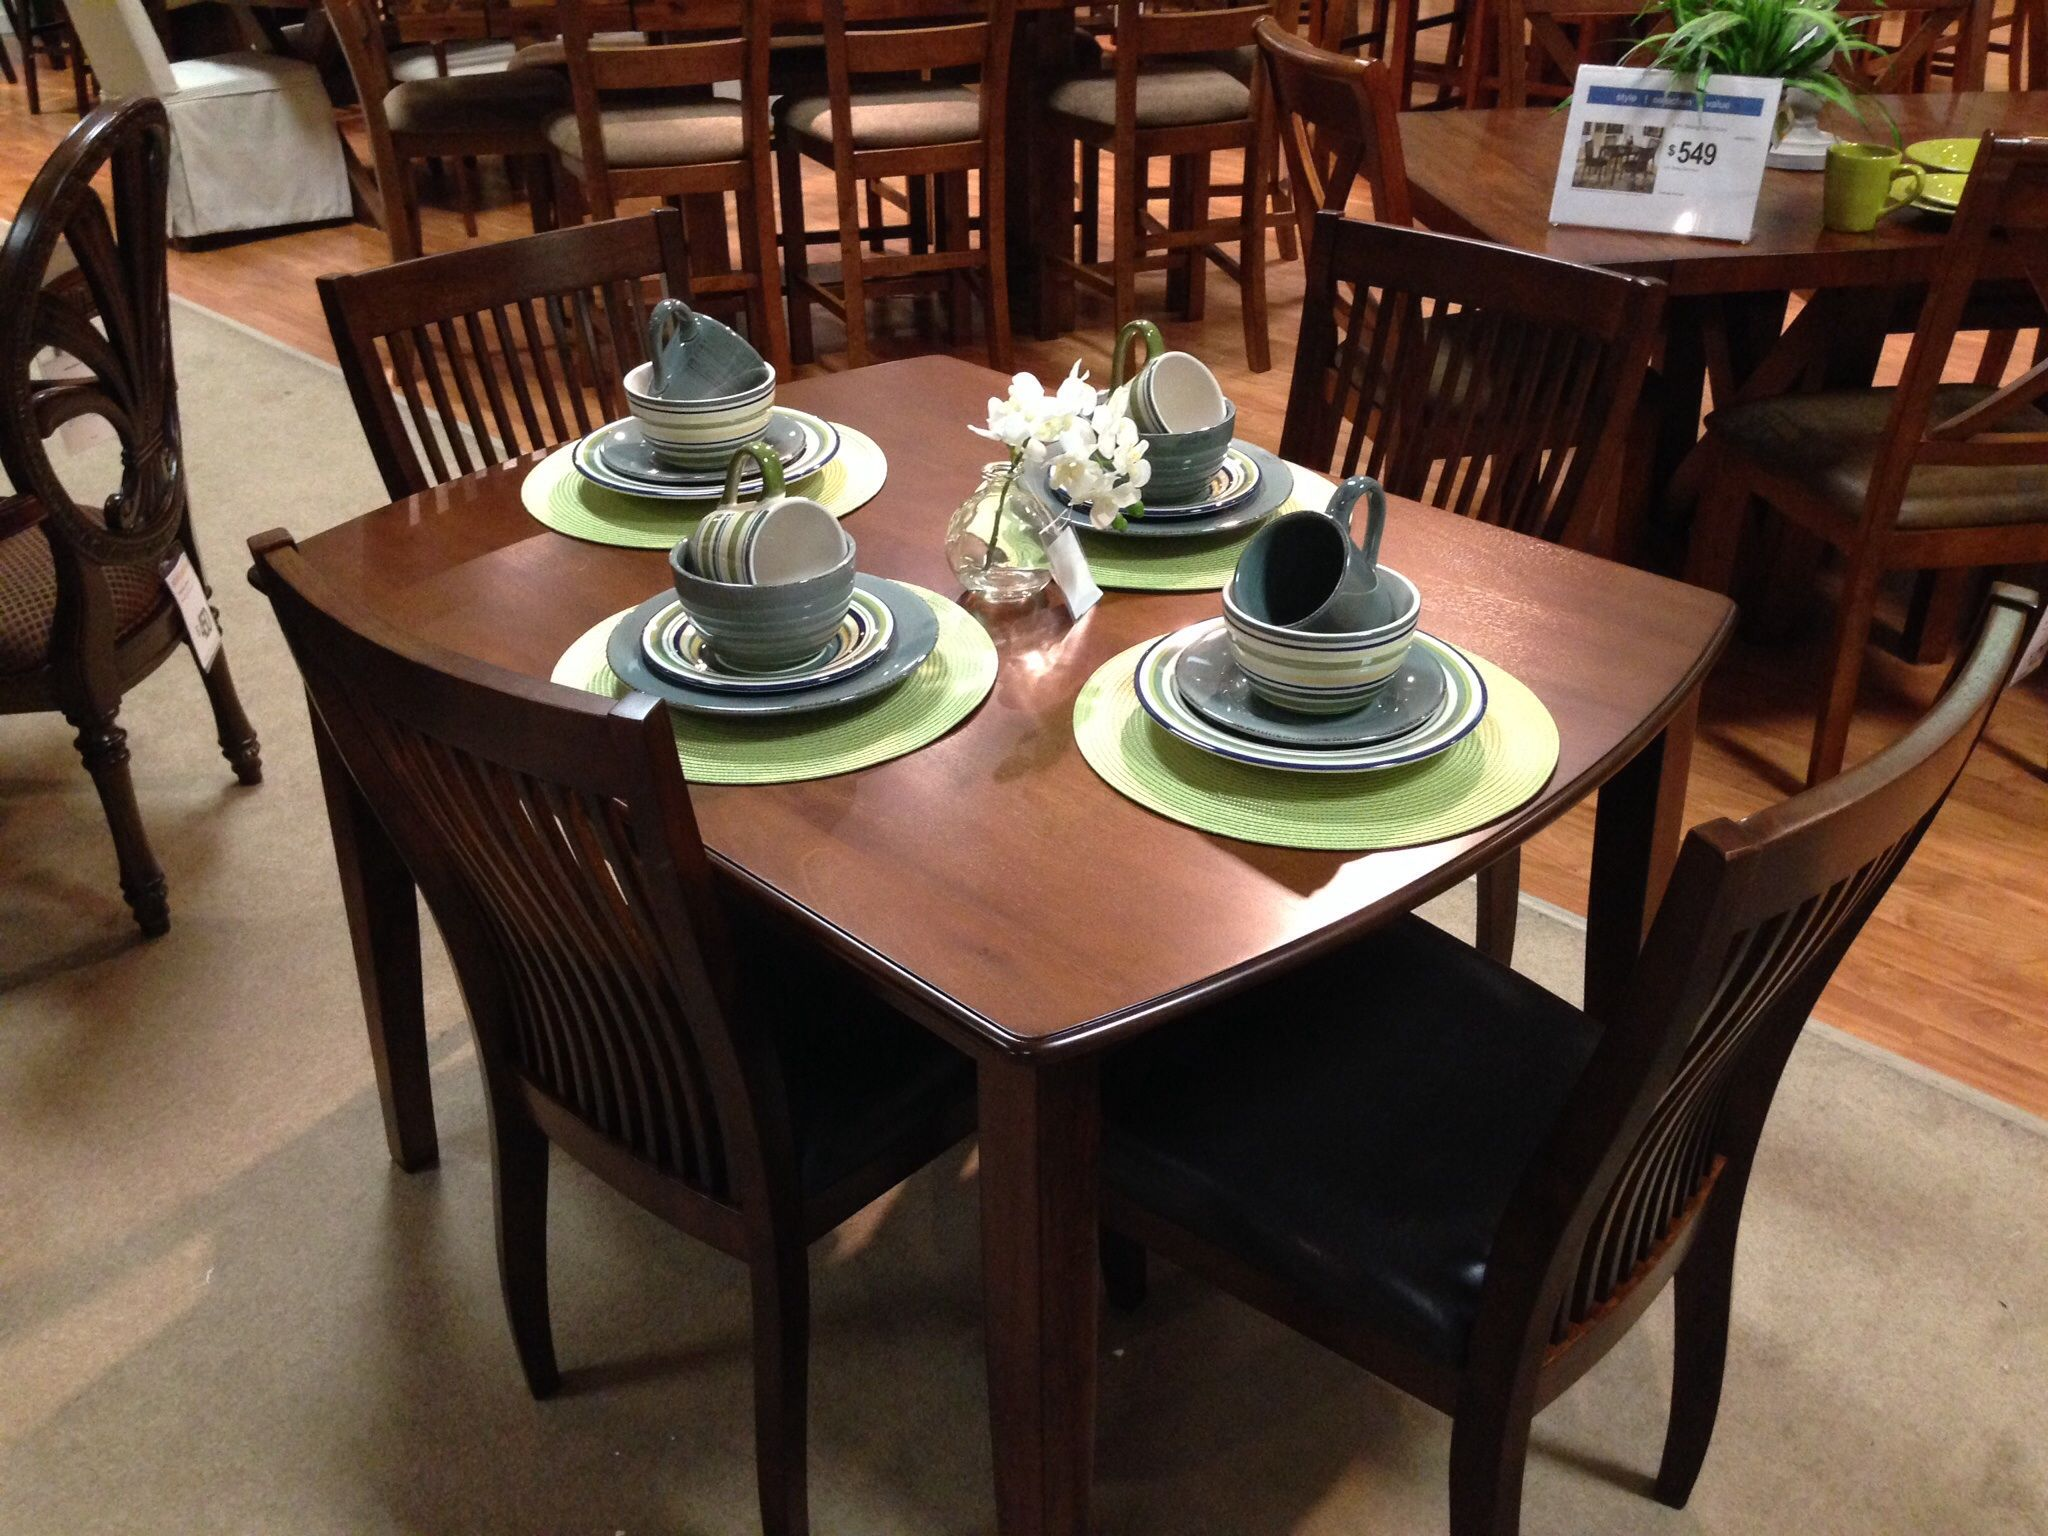 14 Pc Dining Room Place Settings At Virginia Beach Homestore Cool The Room Place Dining Room Sets Design Ideas